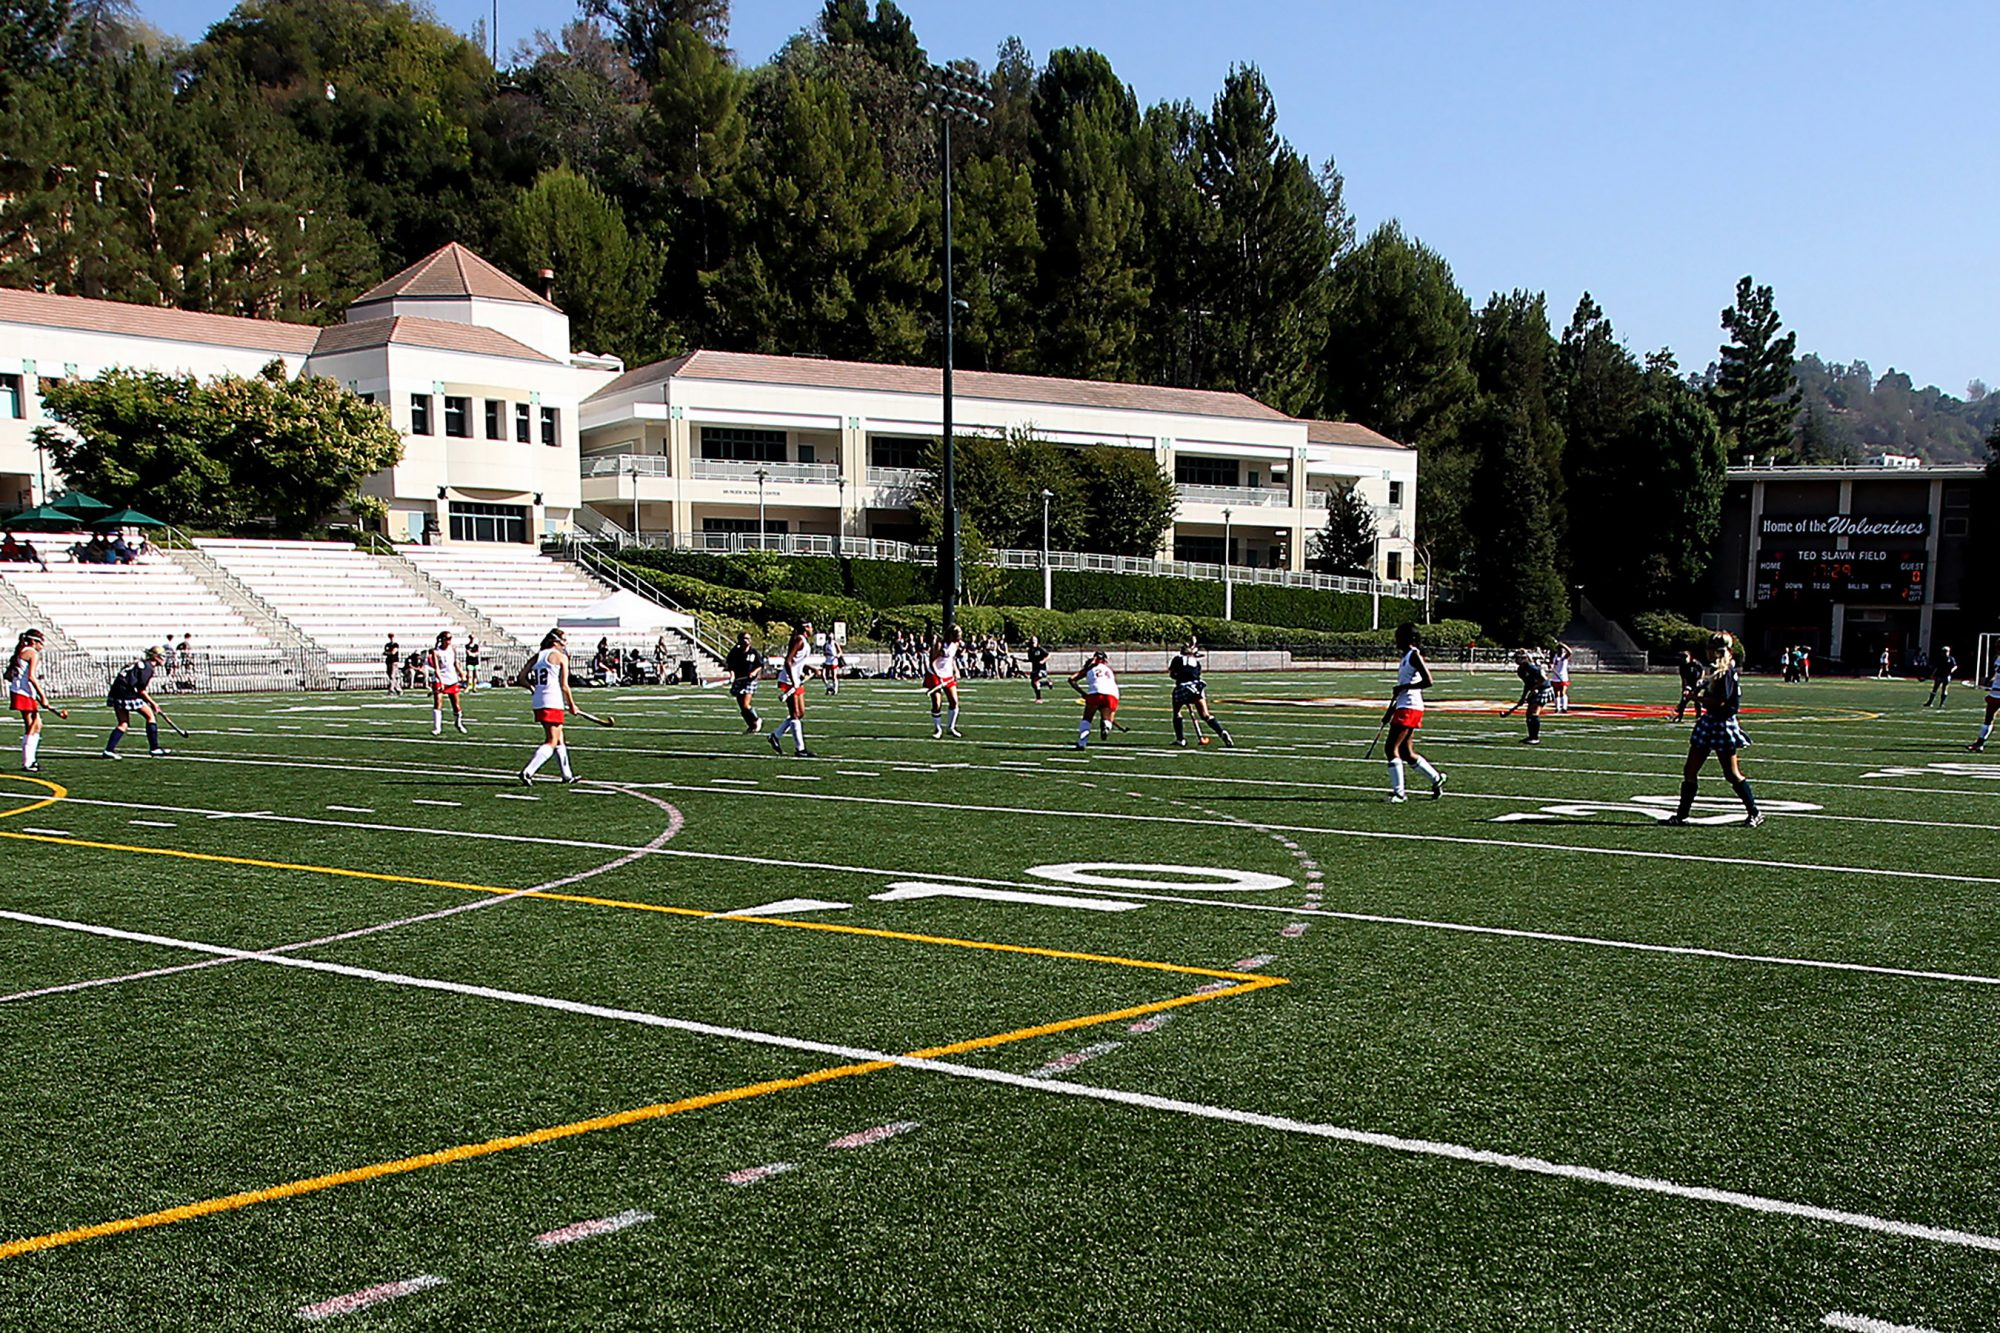 Girls play a game of field hockey on the athletic fields of  Harvard-Westlake School, an independen